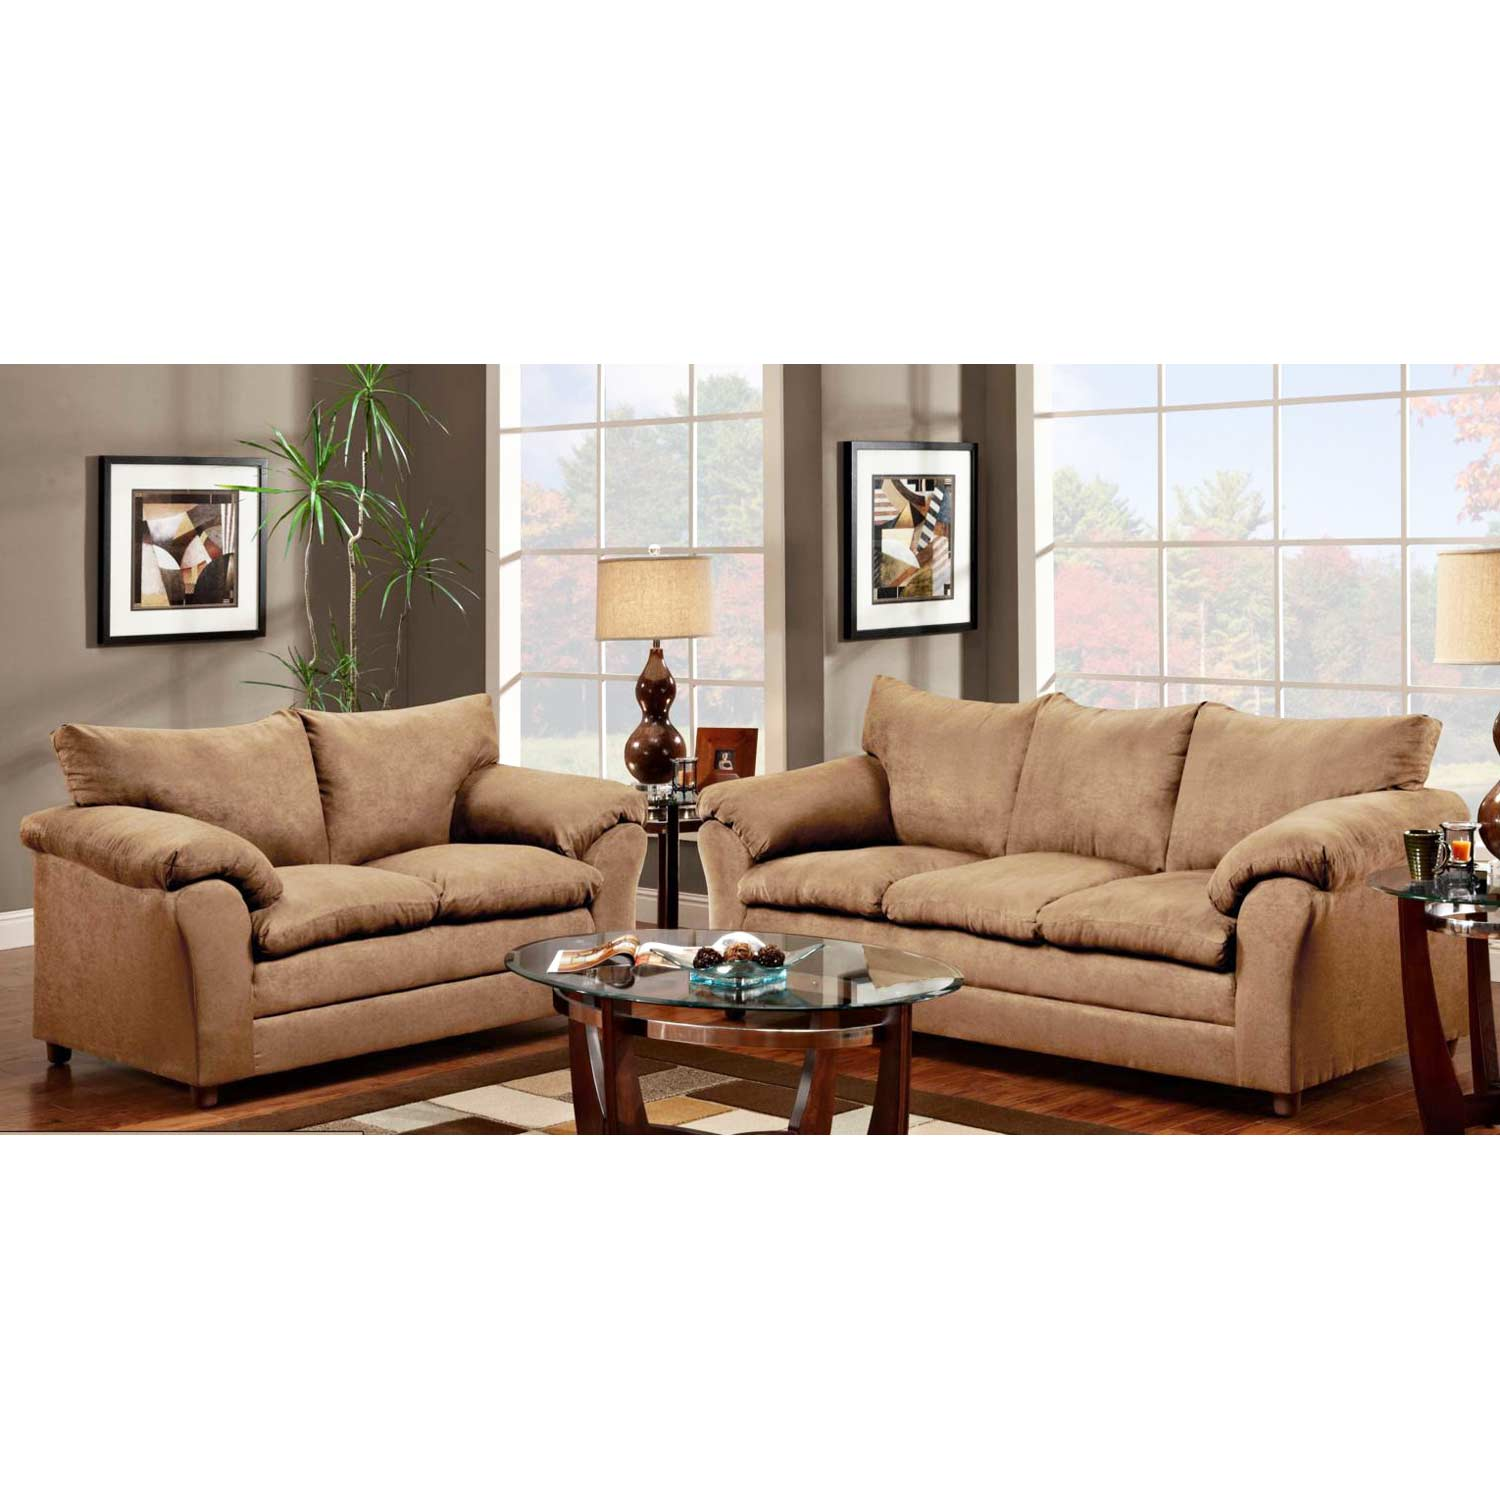 Cozy Home Theater: Gail Pillow Top Arm Sofa - Victory Lane Taupe